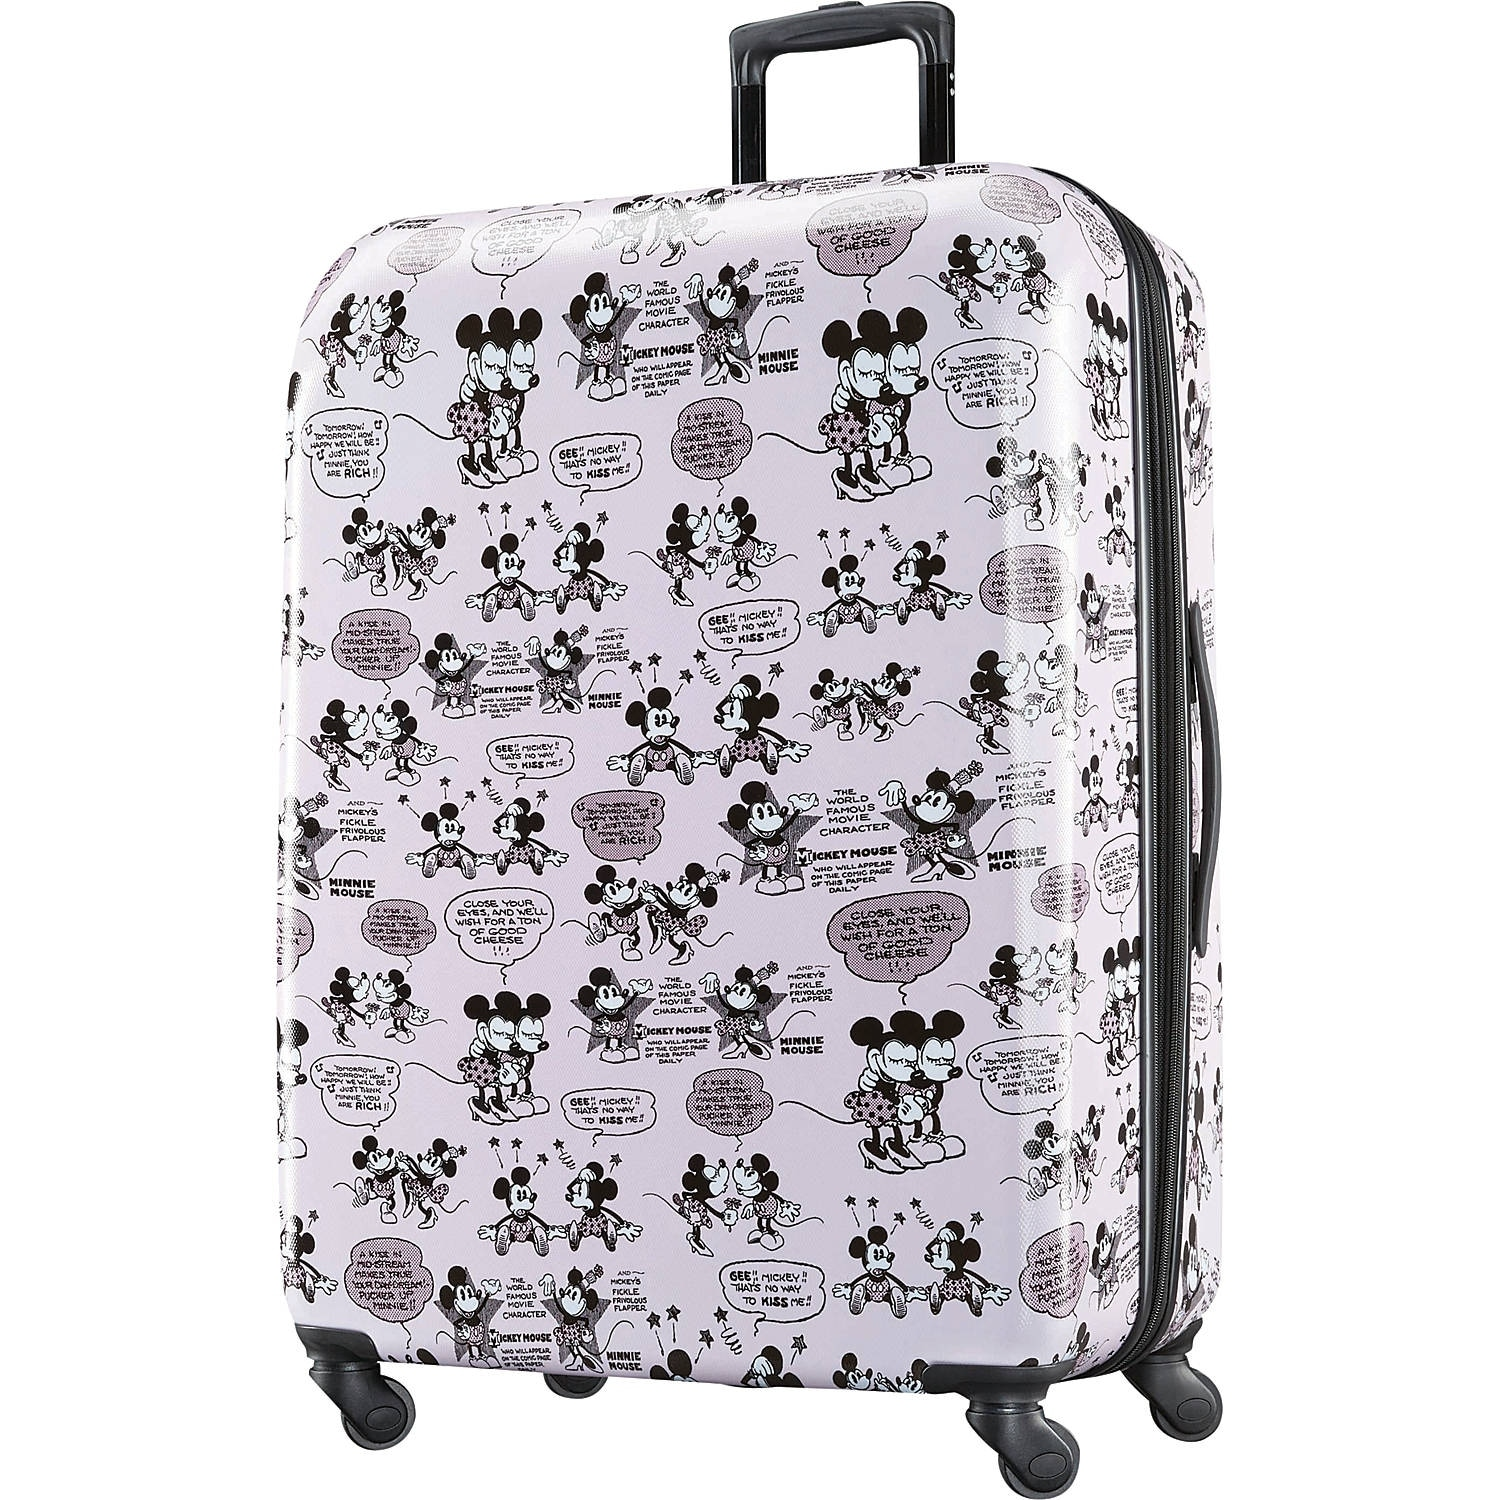 b892bf229 American Tourister Luggage   Shop our Best Luggage & Bags Deals Online at  Overstock